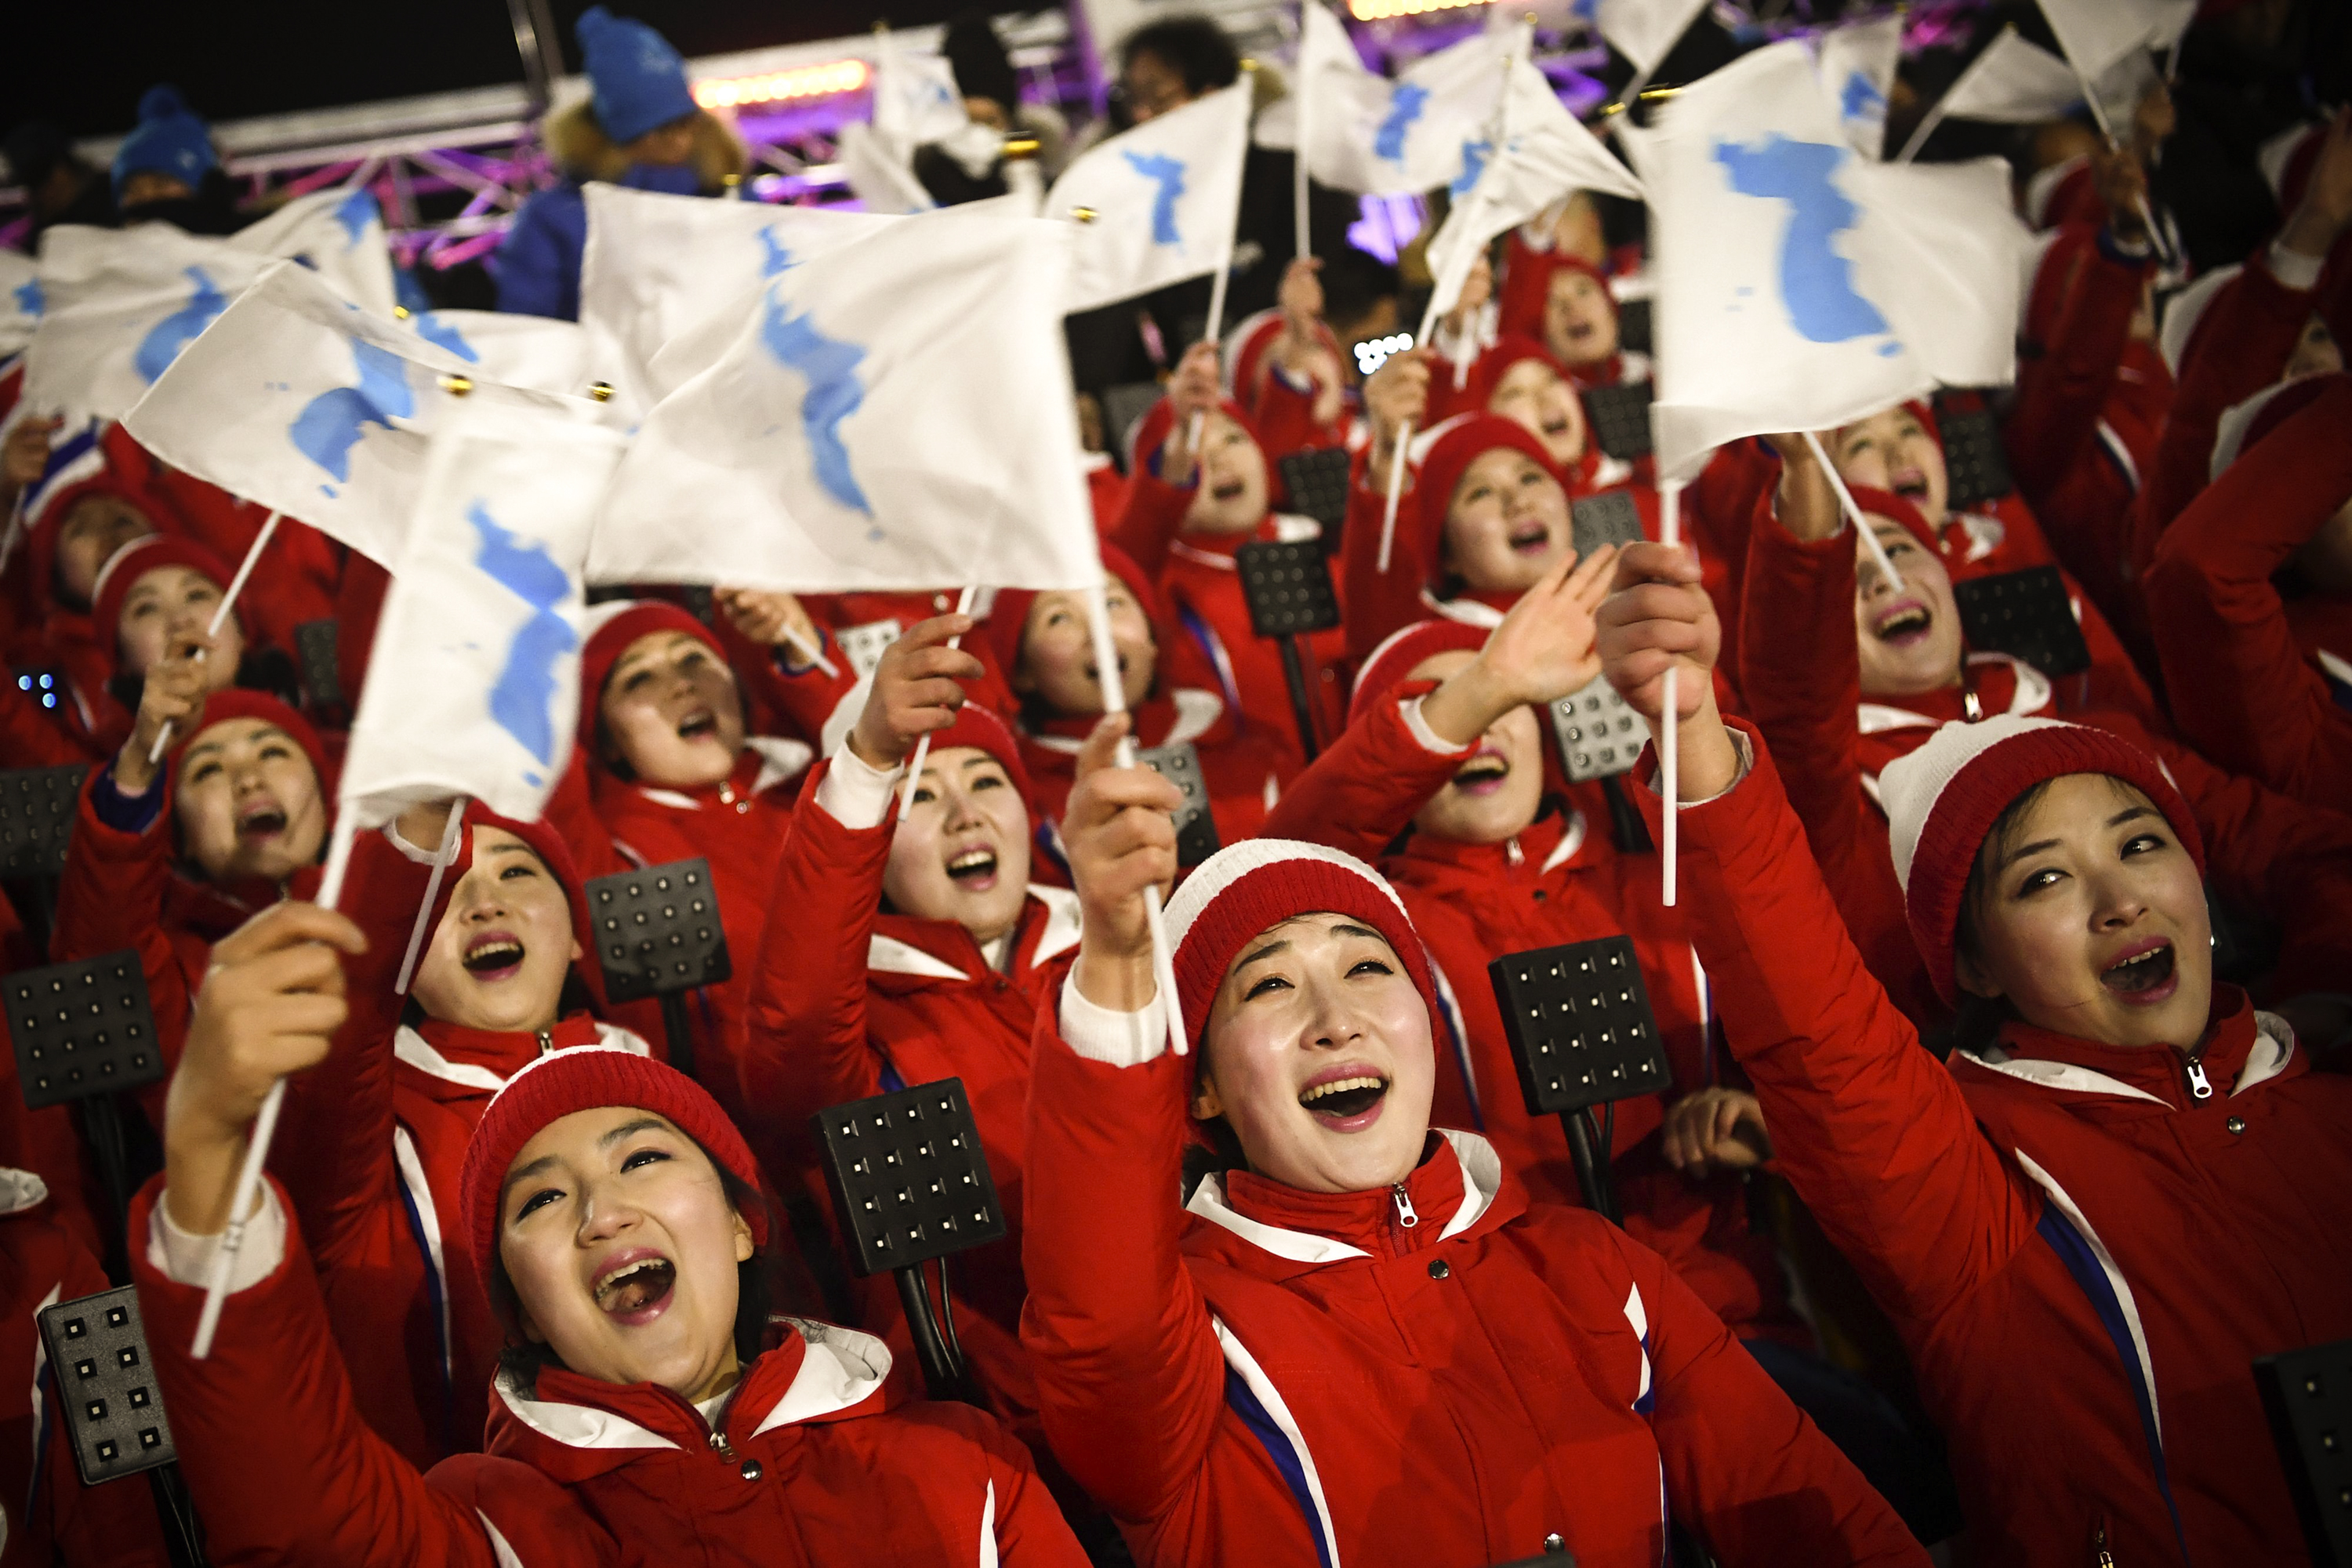 Members of the North Korean cheering band wave flags ahead of the opening ceremony of the Pyeongchang 2018 Winter Olympic Games on February 9, 2018.